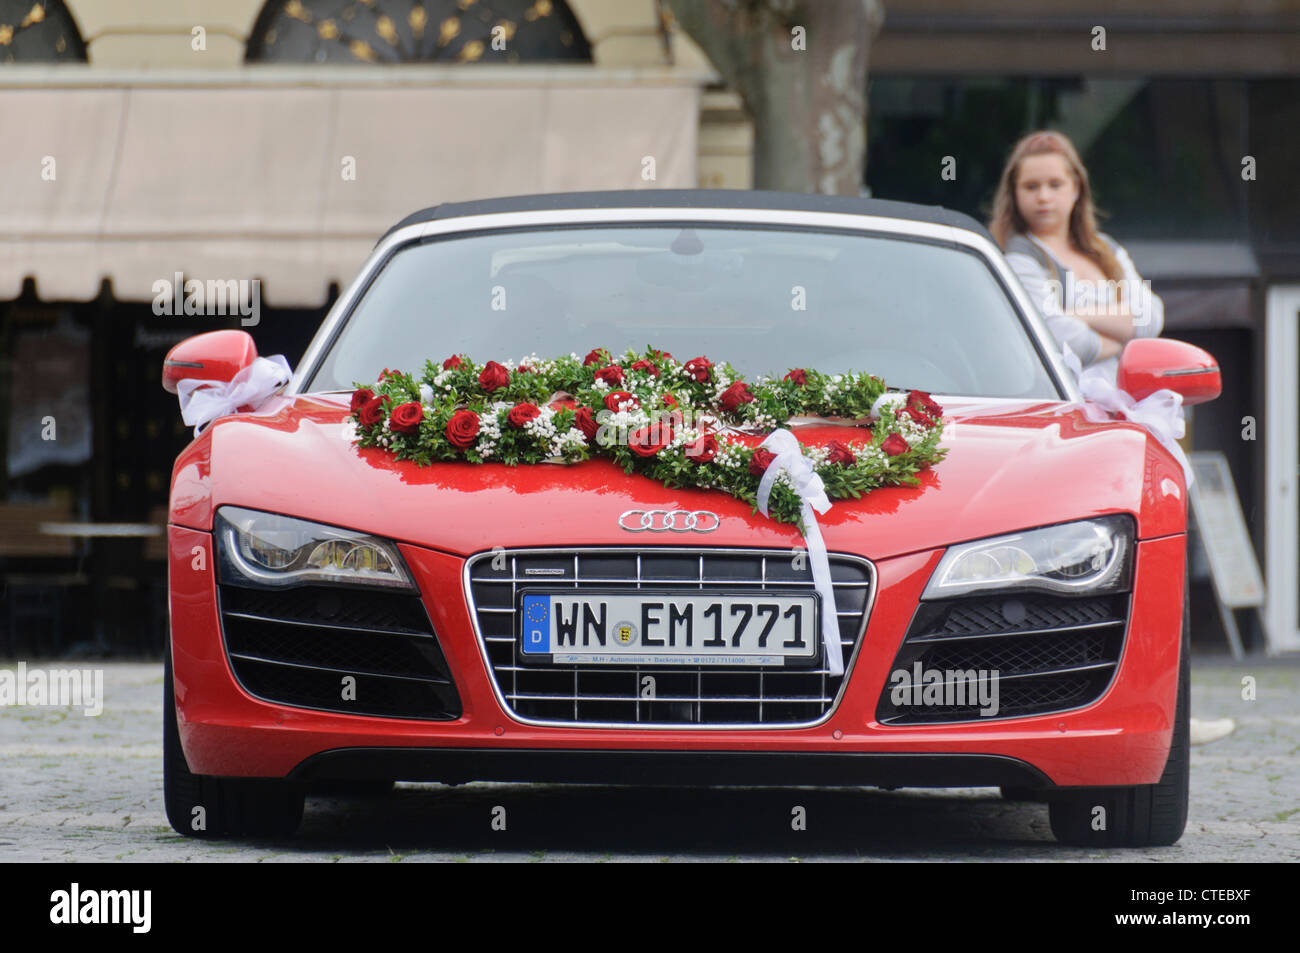 Red Audi High Resolution Stock Photography And Images Alamy